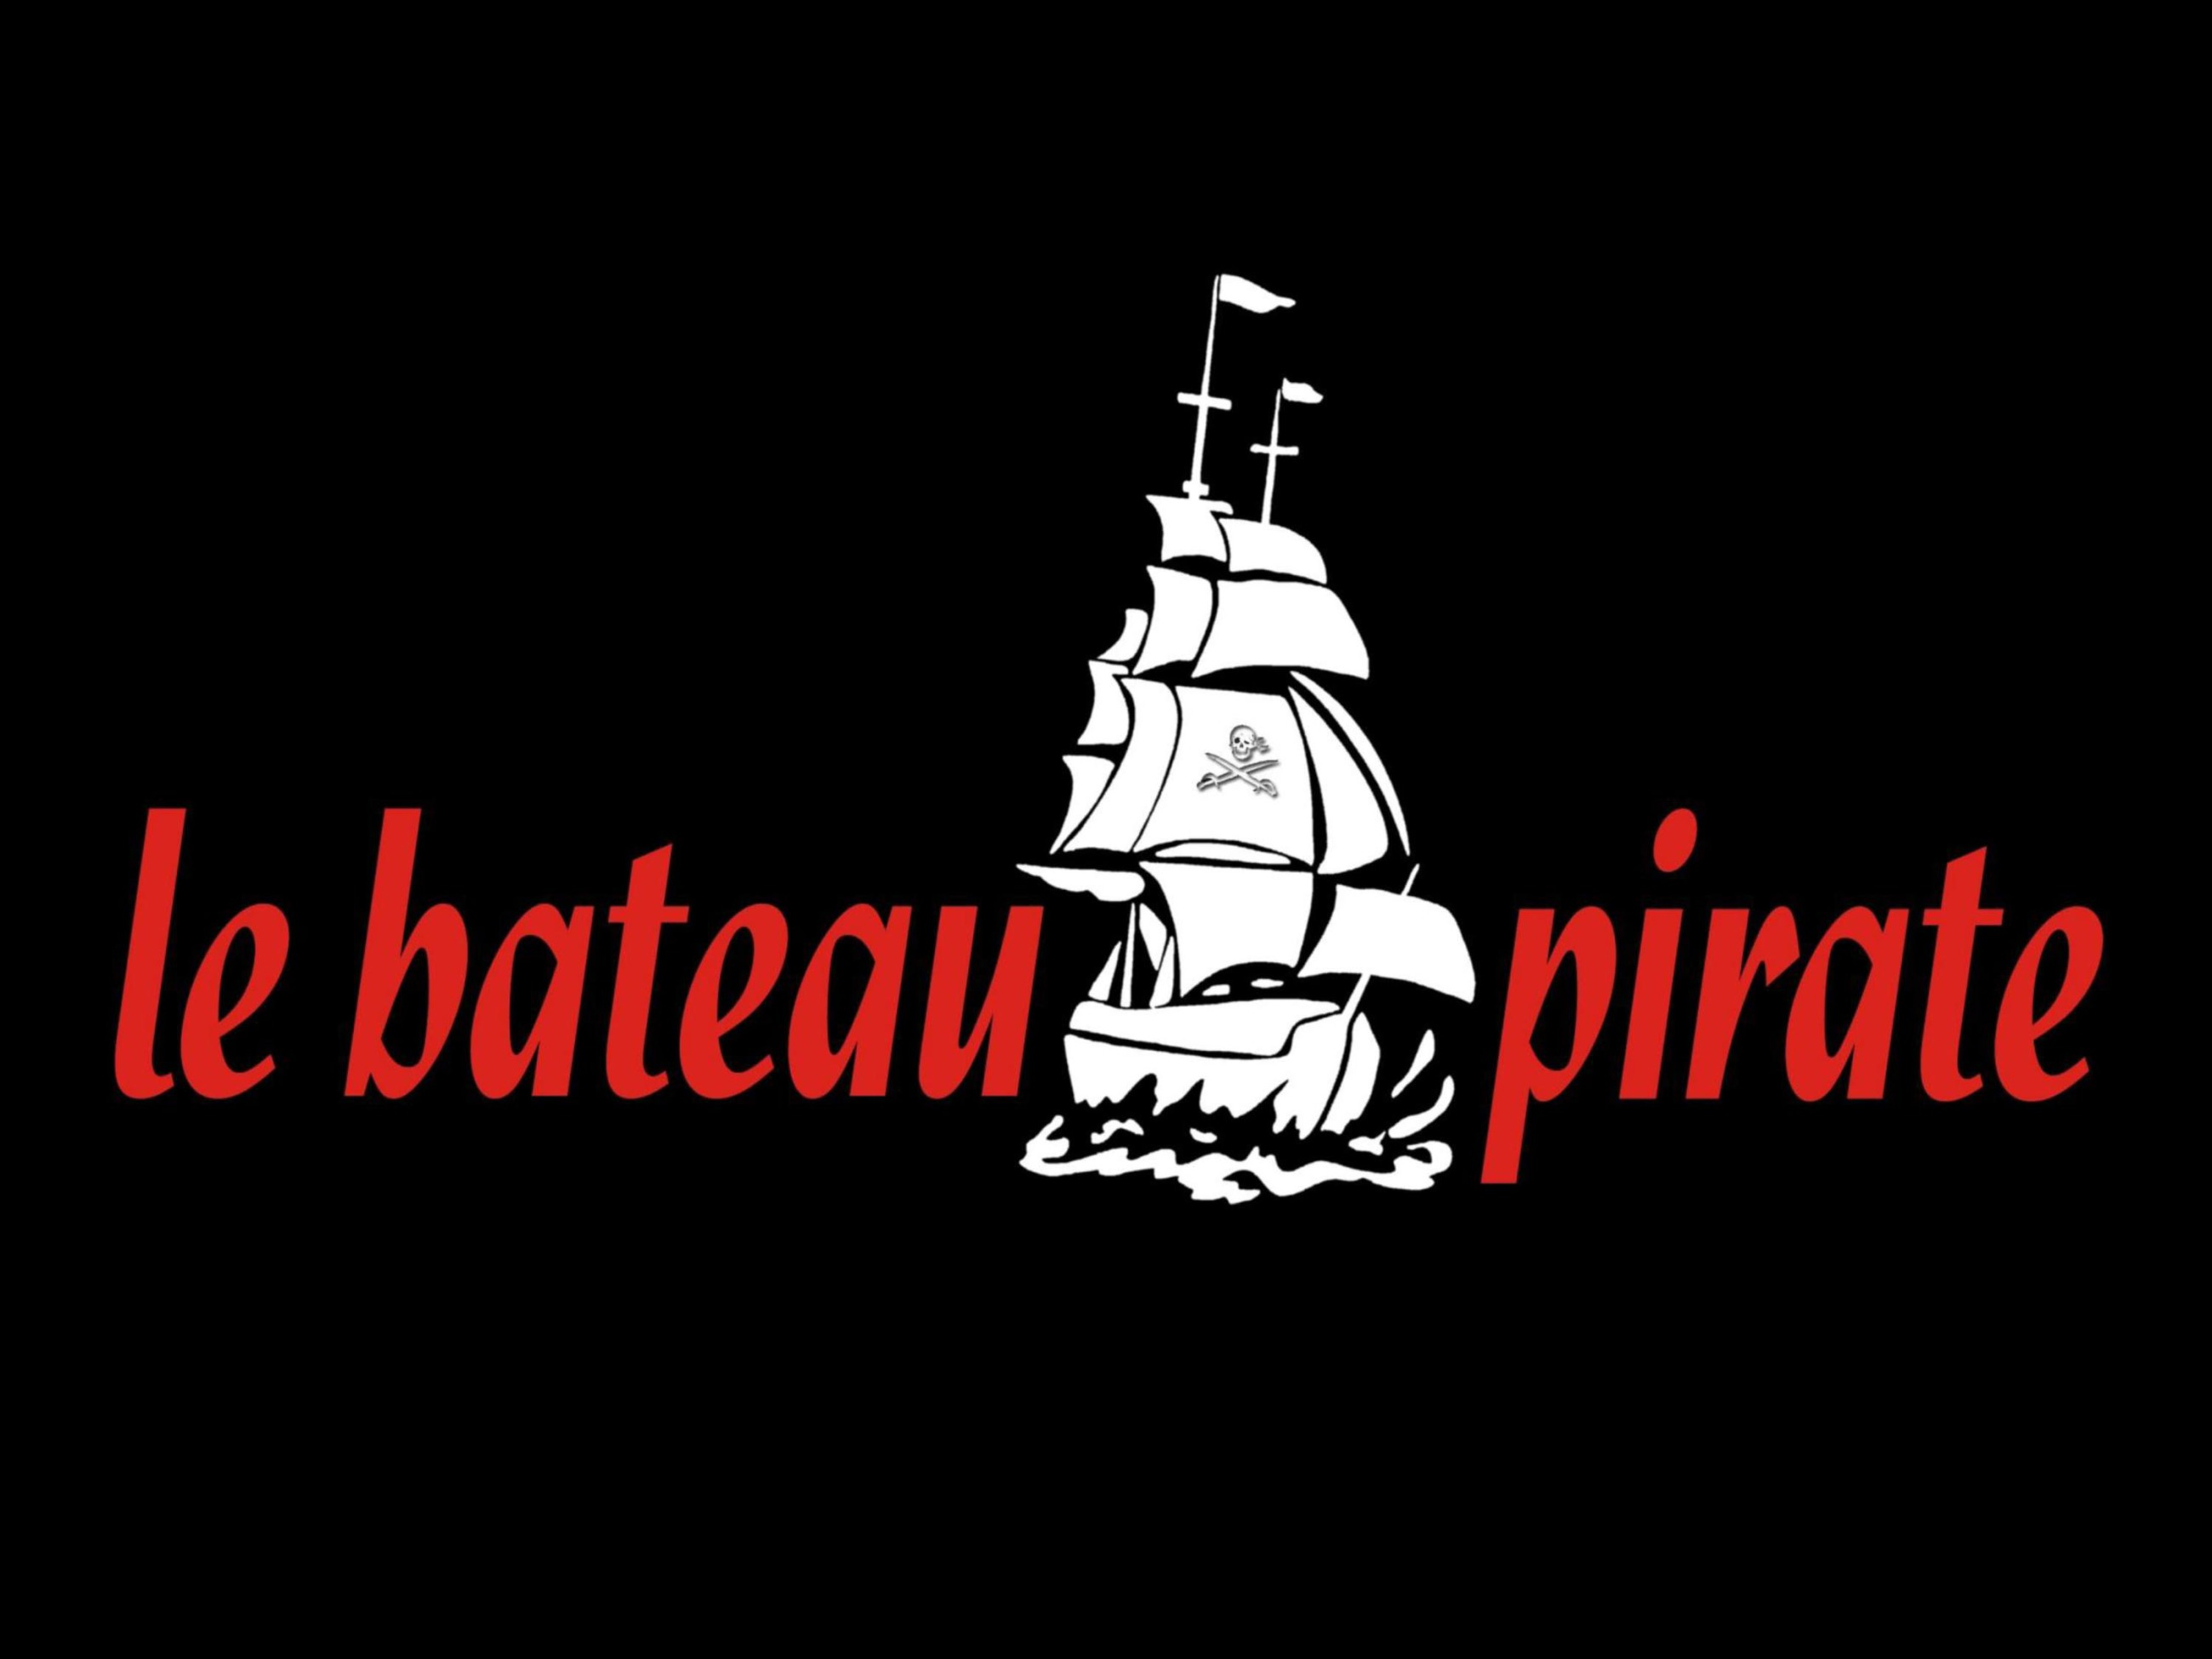 bateau pirate, animation pirate, animation enfant, animation pirate enfant, anniversaire pirate, parc d'aventure